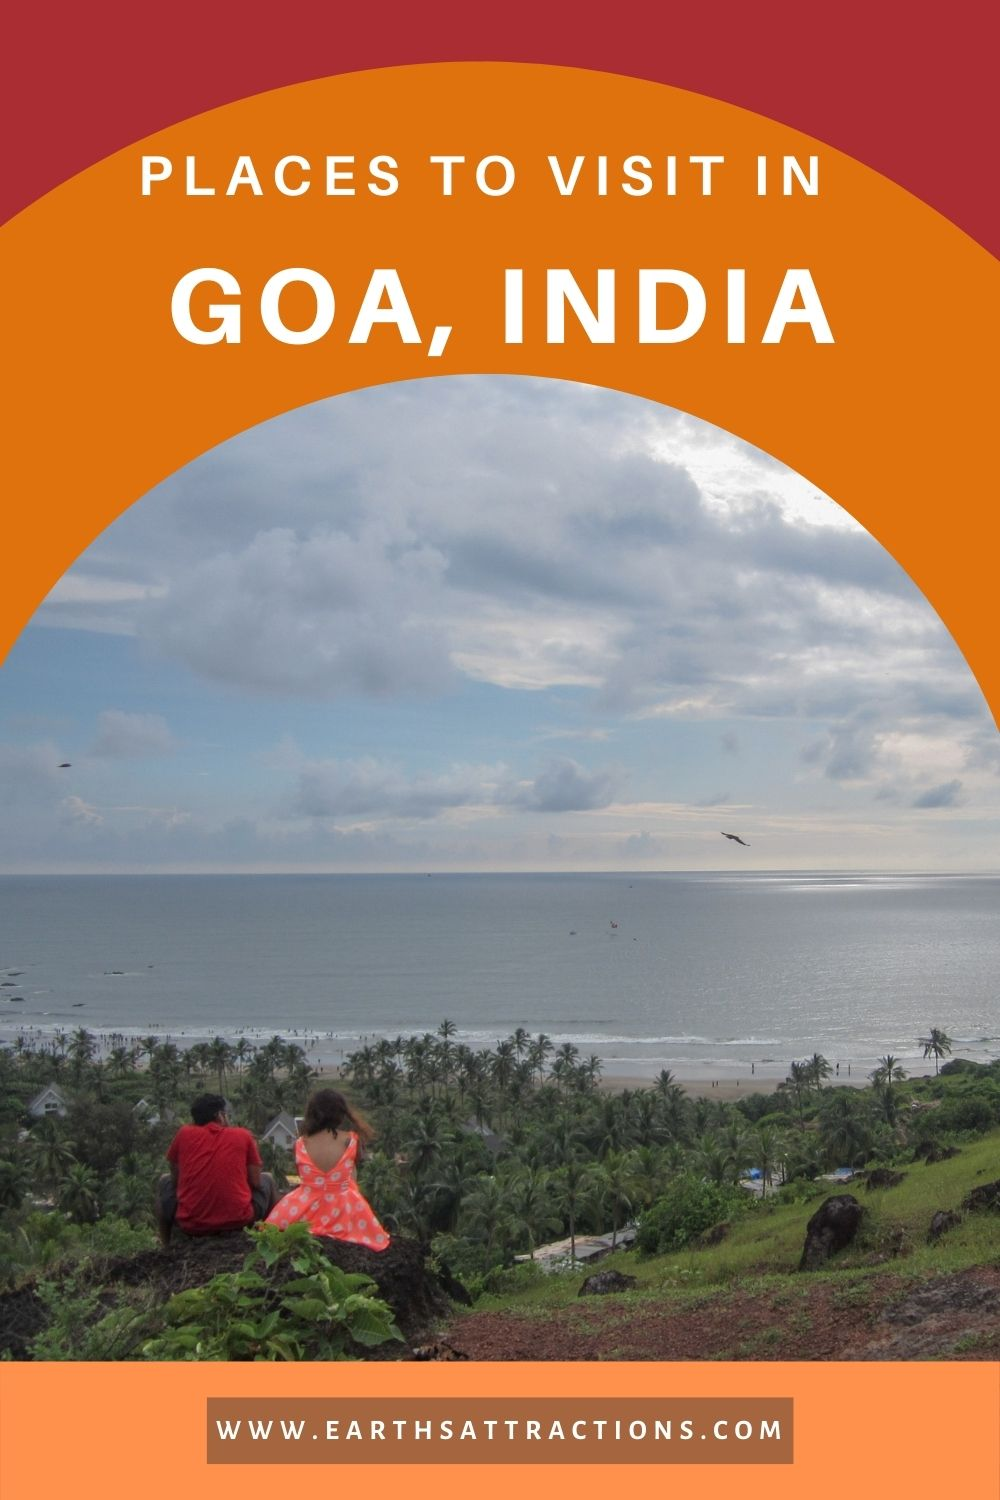 Best places to visit in Goa, India. Use this comprehensive Goa travel guide to plan your trip to Goa. Discover the best Goa things to do, Goa hotels, Goa restaurants, and useful Goa travel tips from this article. Read it now! #goa #goaindia #indiatravel #india #earthsattractions #traveldestinations #asia #asiatravel #goathingstodo #goatips #goarestaurants #goahotels